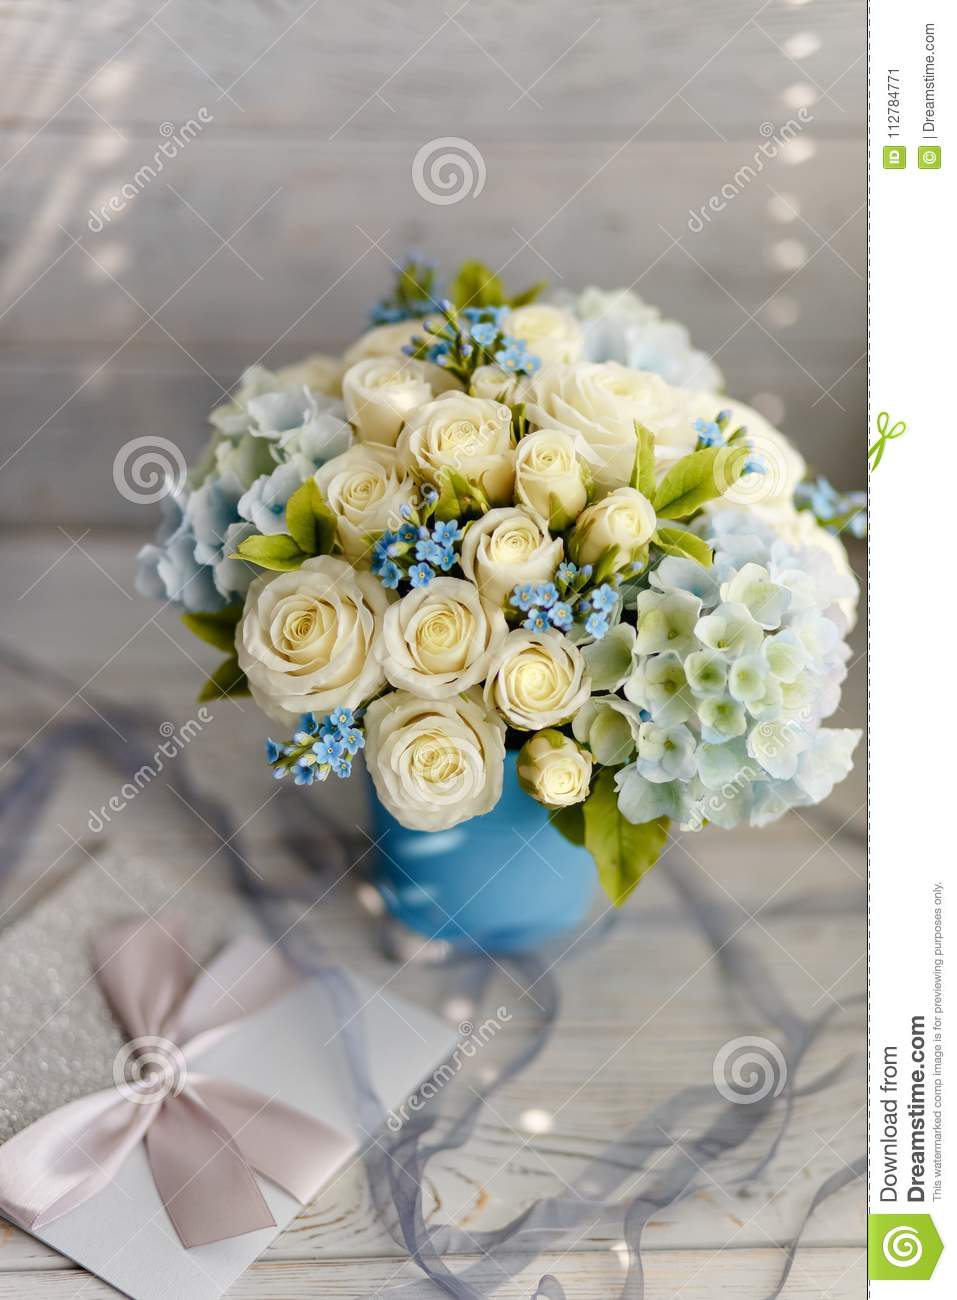 Blue And White Wedding Flowers Stock Image Image Of Background